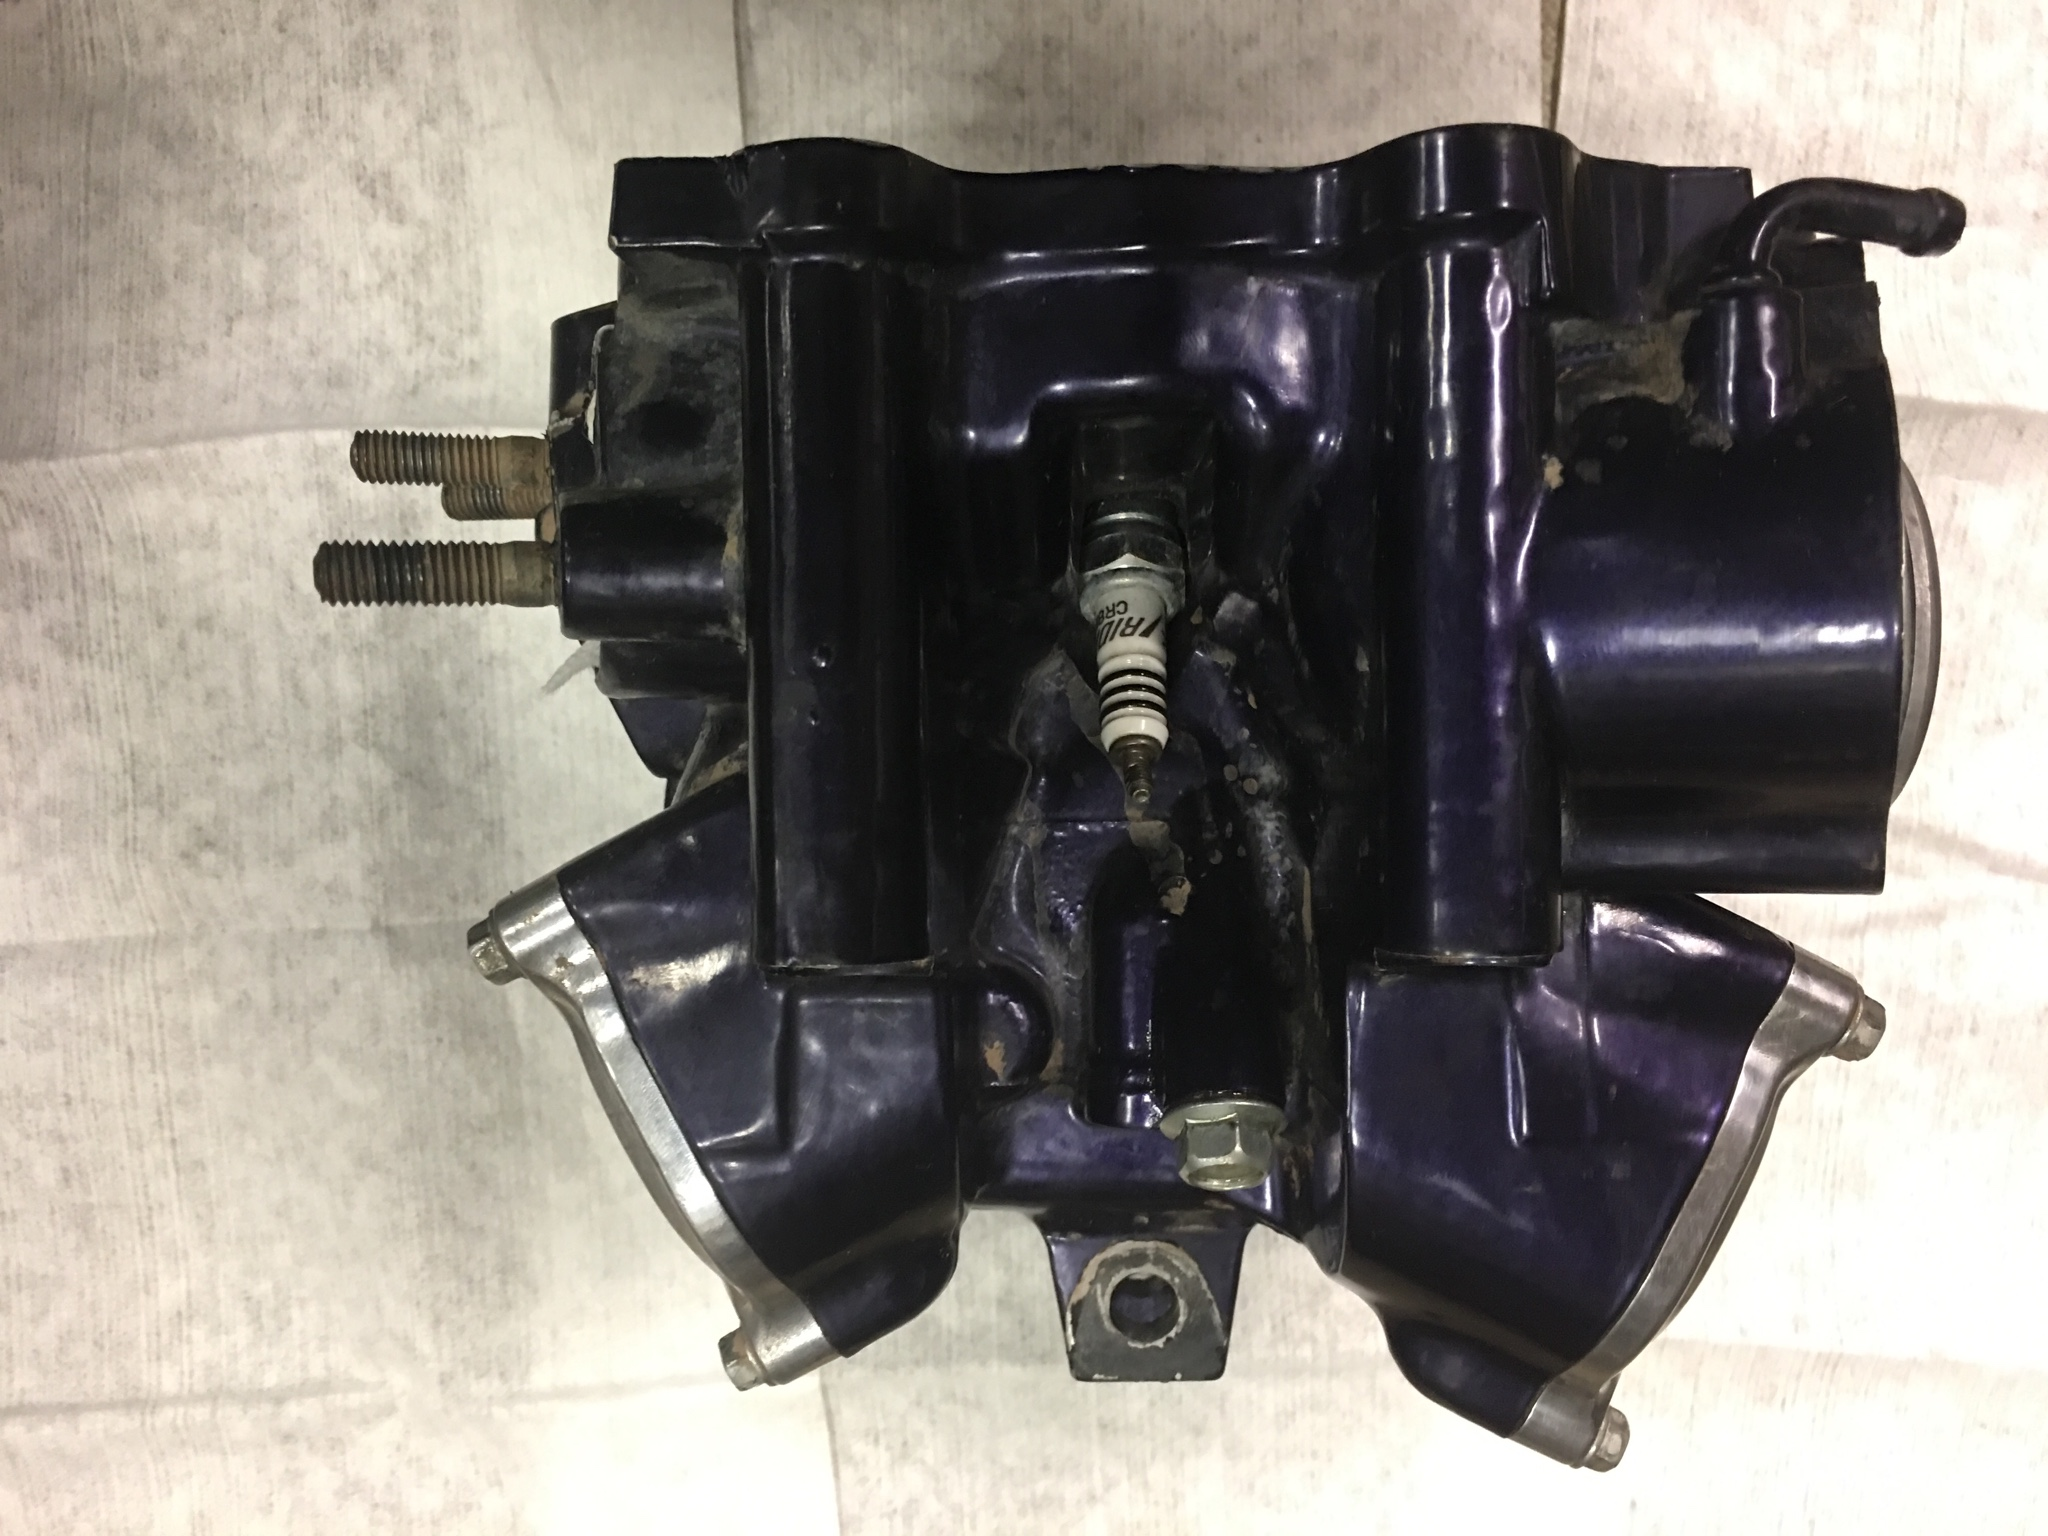 yamaha raptor 700 engine whole or parts for sale